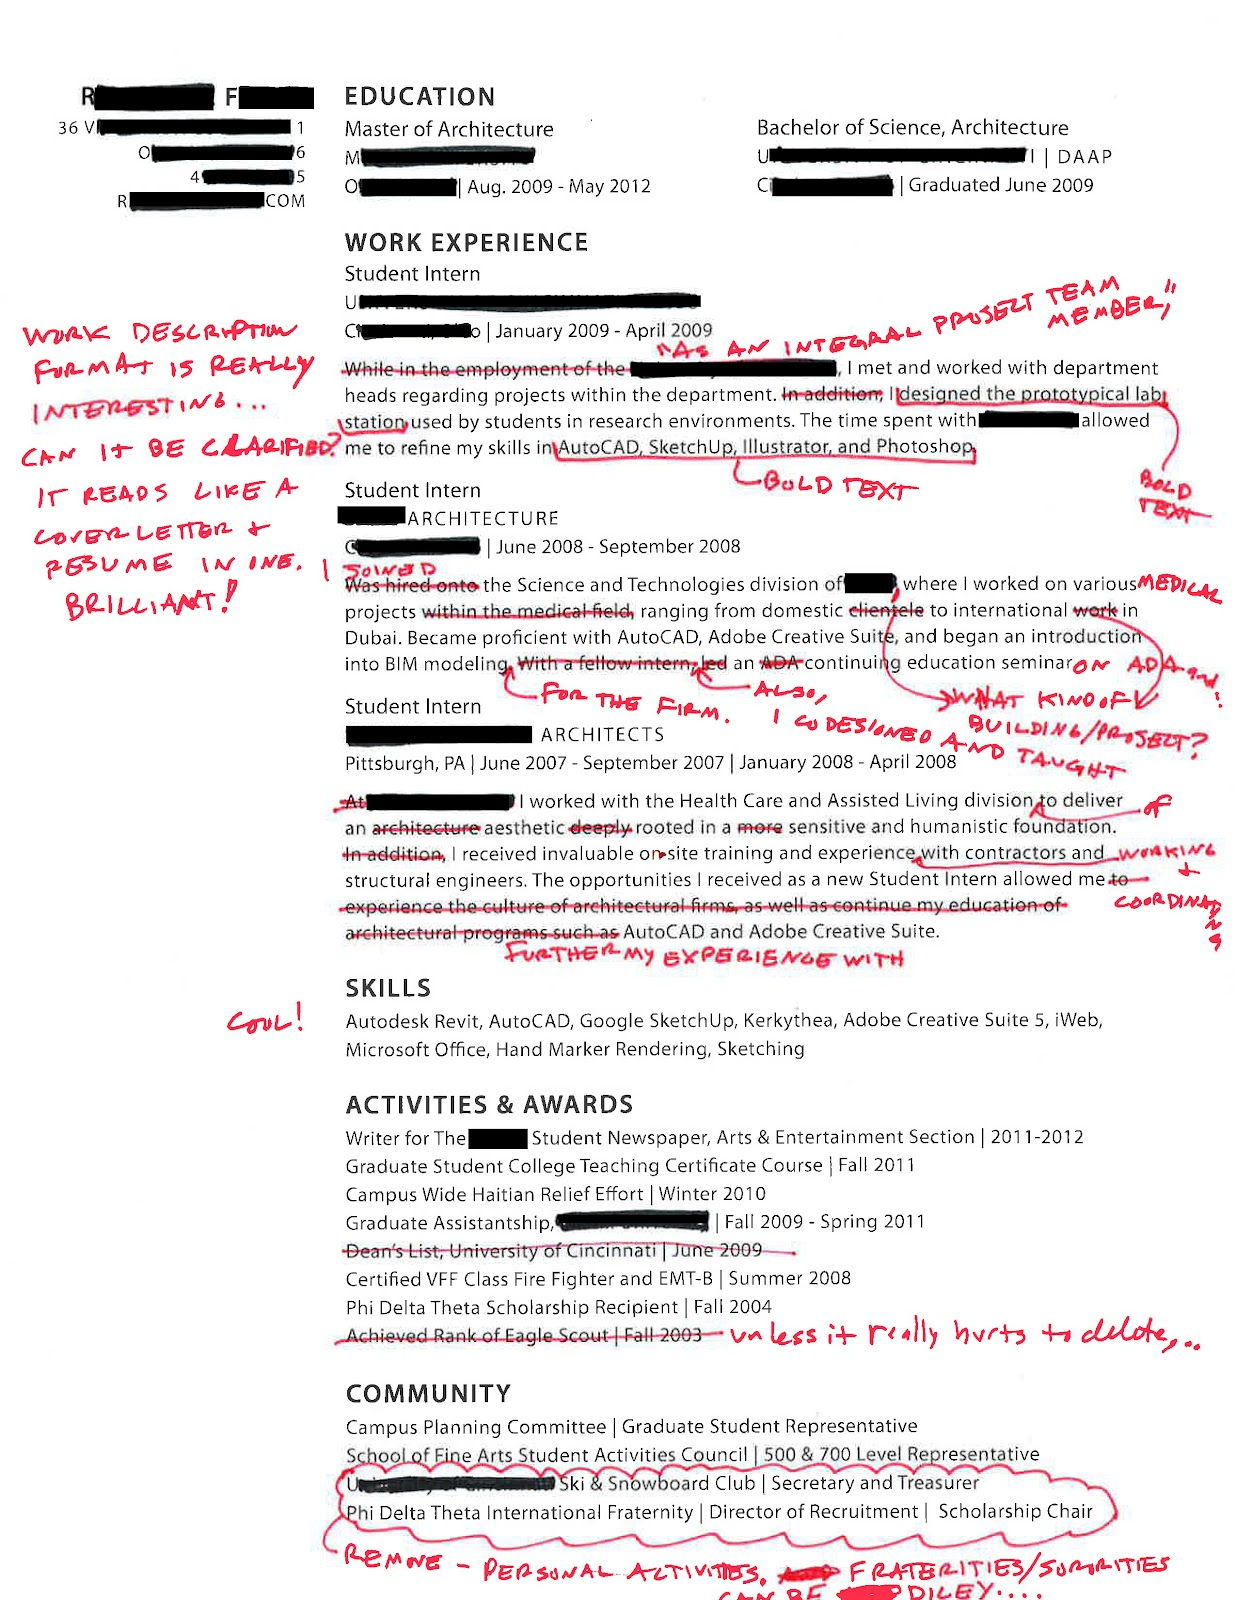 intern 101 redlined resumes the importance of narrative